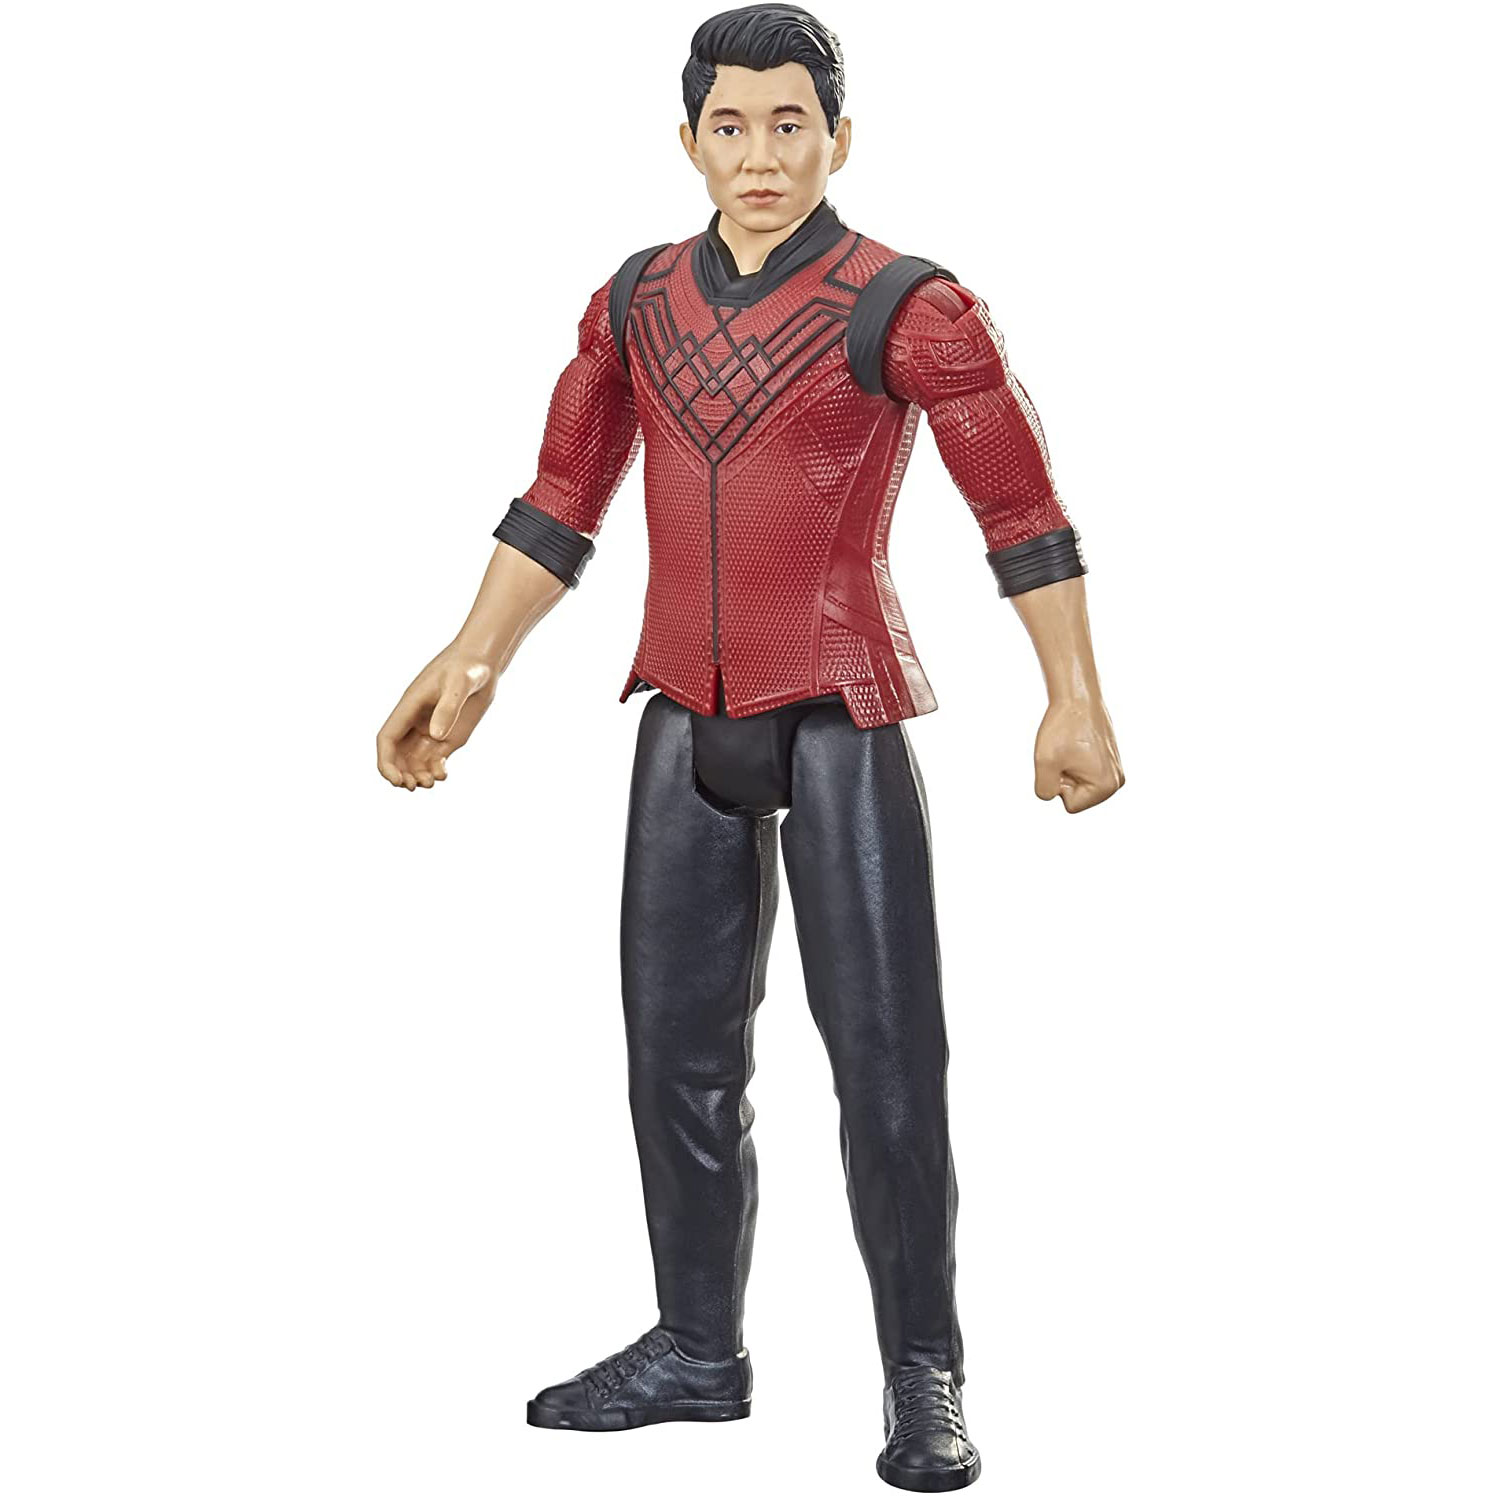 Marvel Shang-Chi and the Legend of the Ten Rings: Titan Hero Shang-Chi Figure